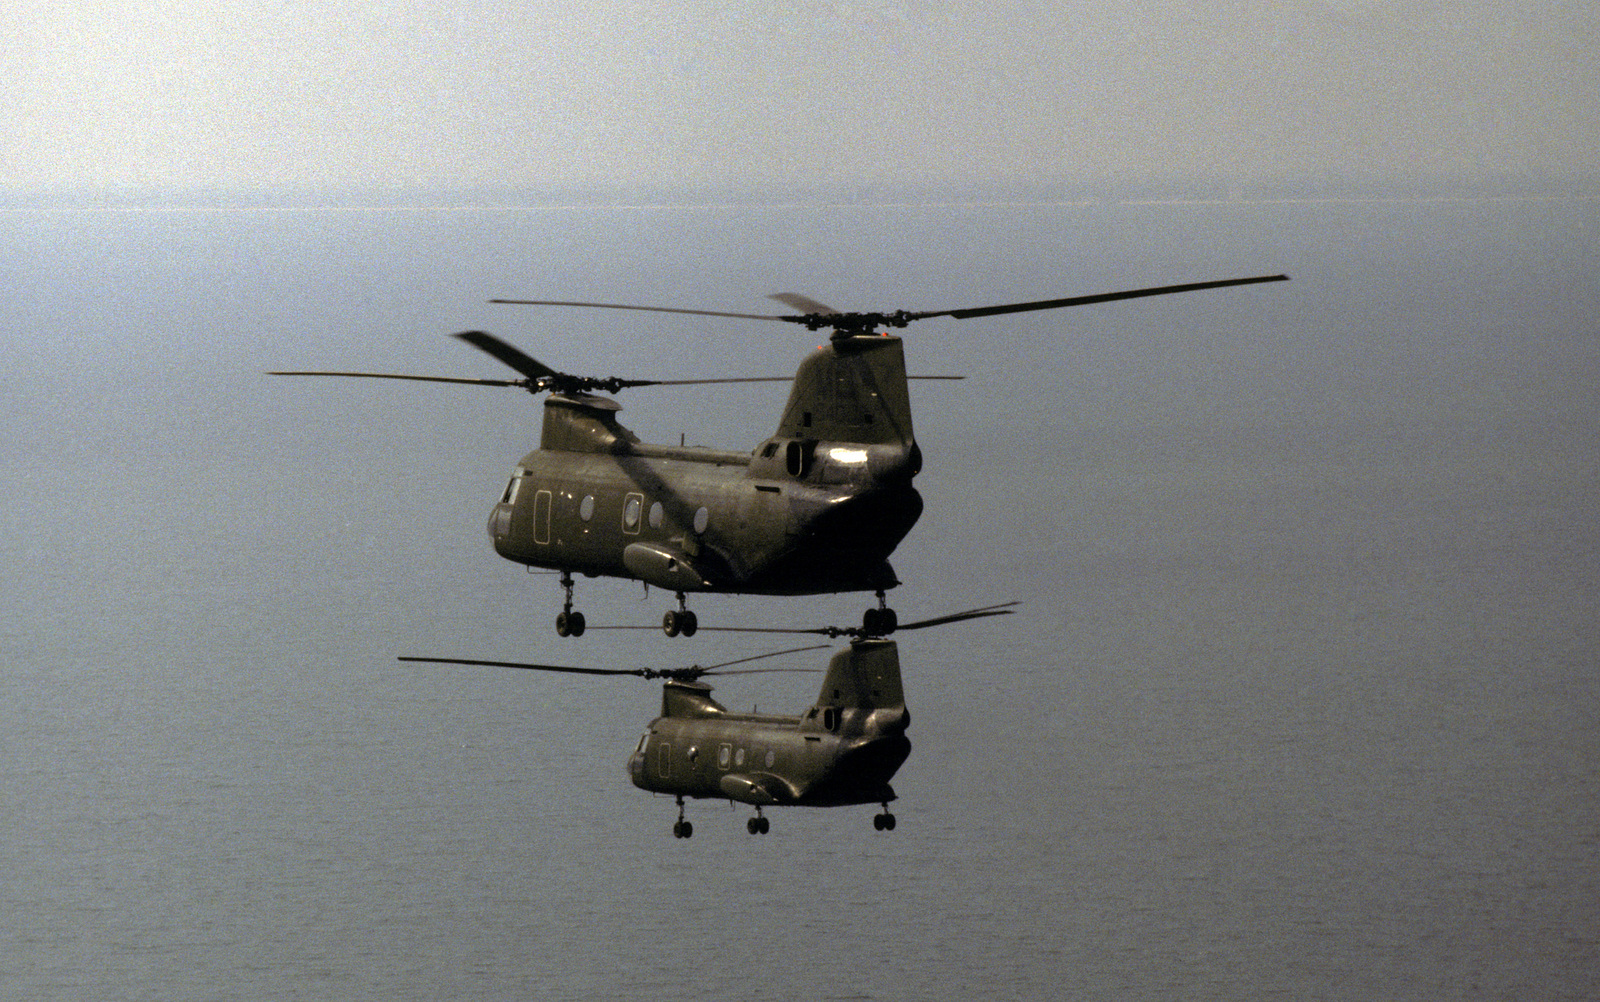 An air-to-air left side view of two CH-46 Sea Knight helicopters